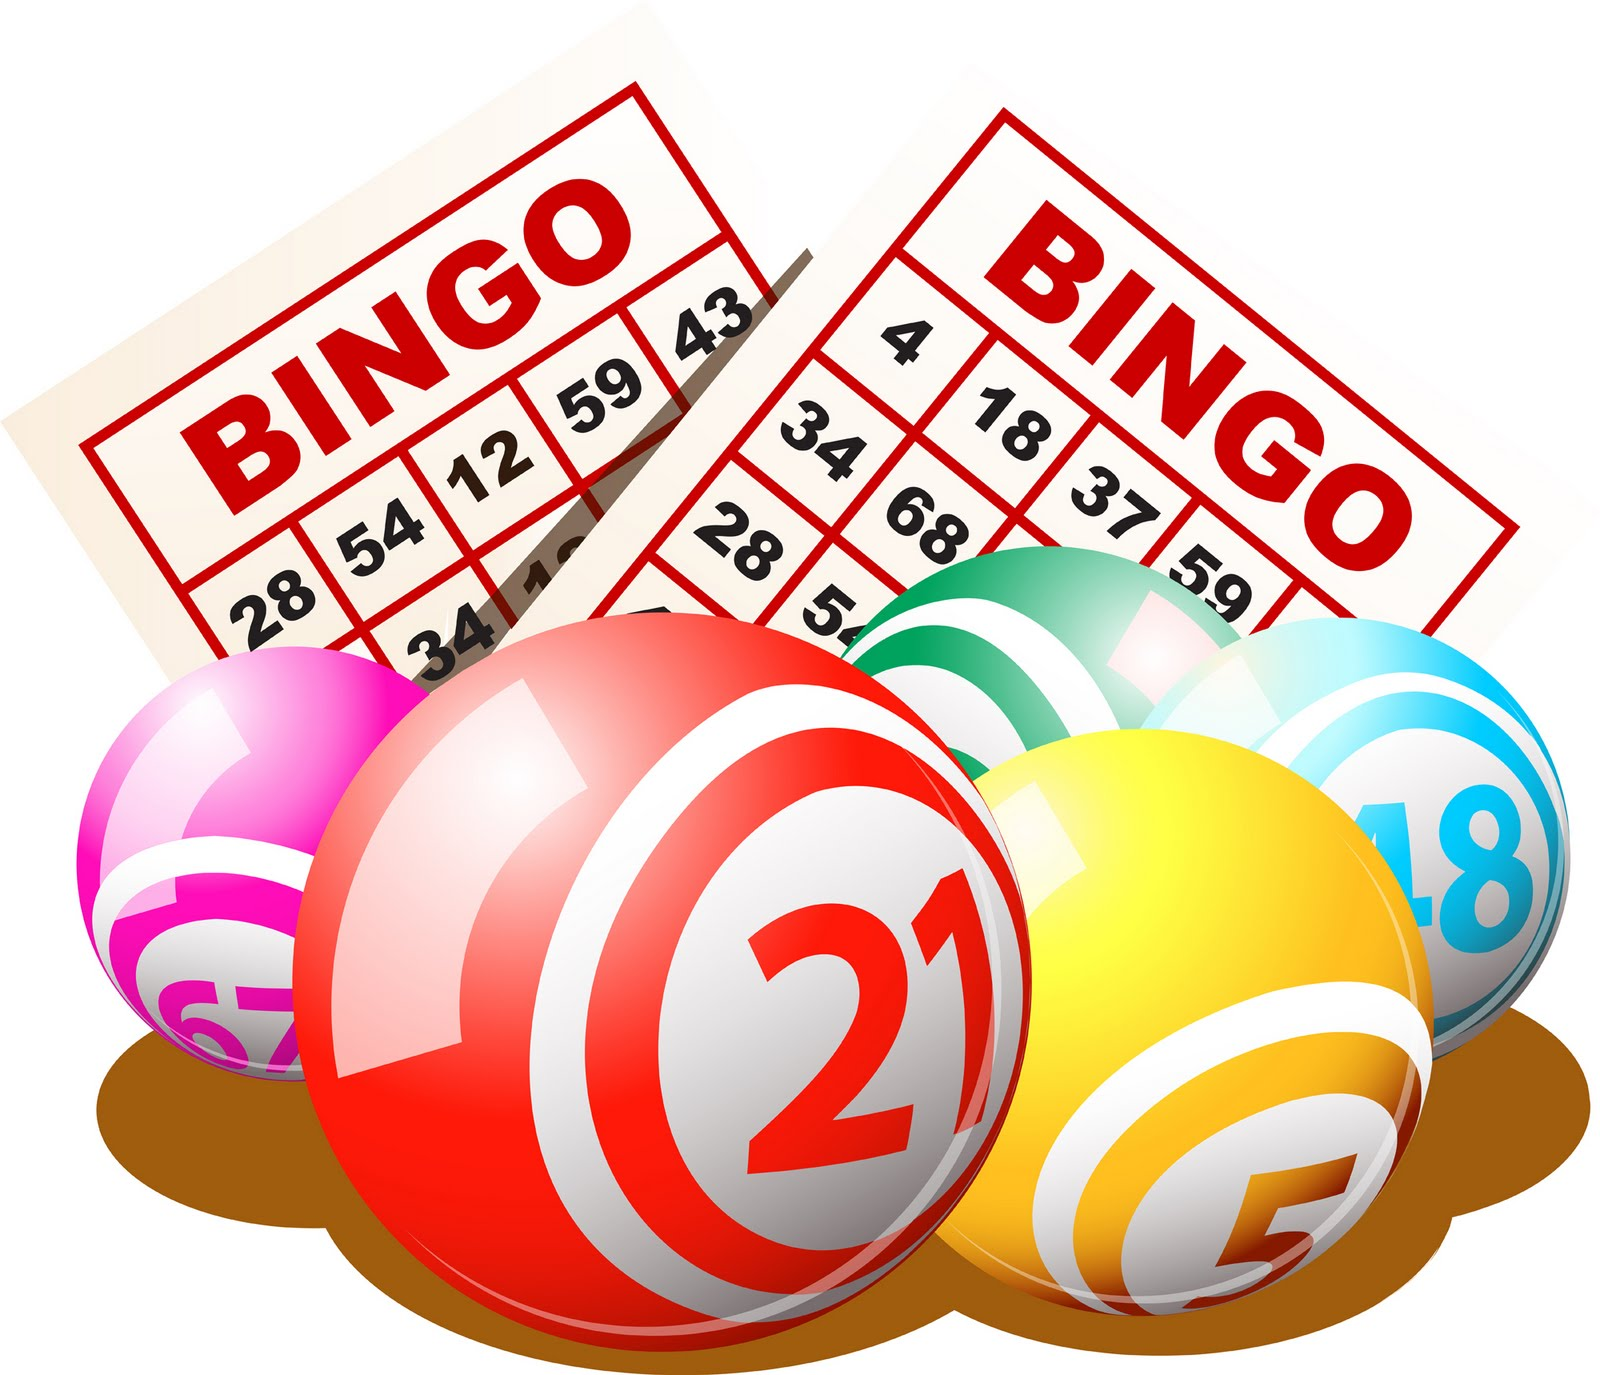 There Is 19 50s Bingo Free Cliparts All Used For Free